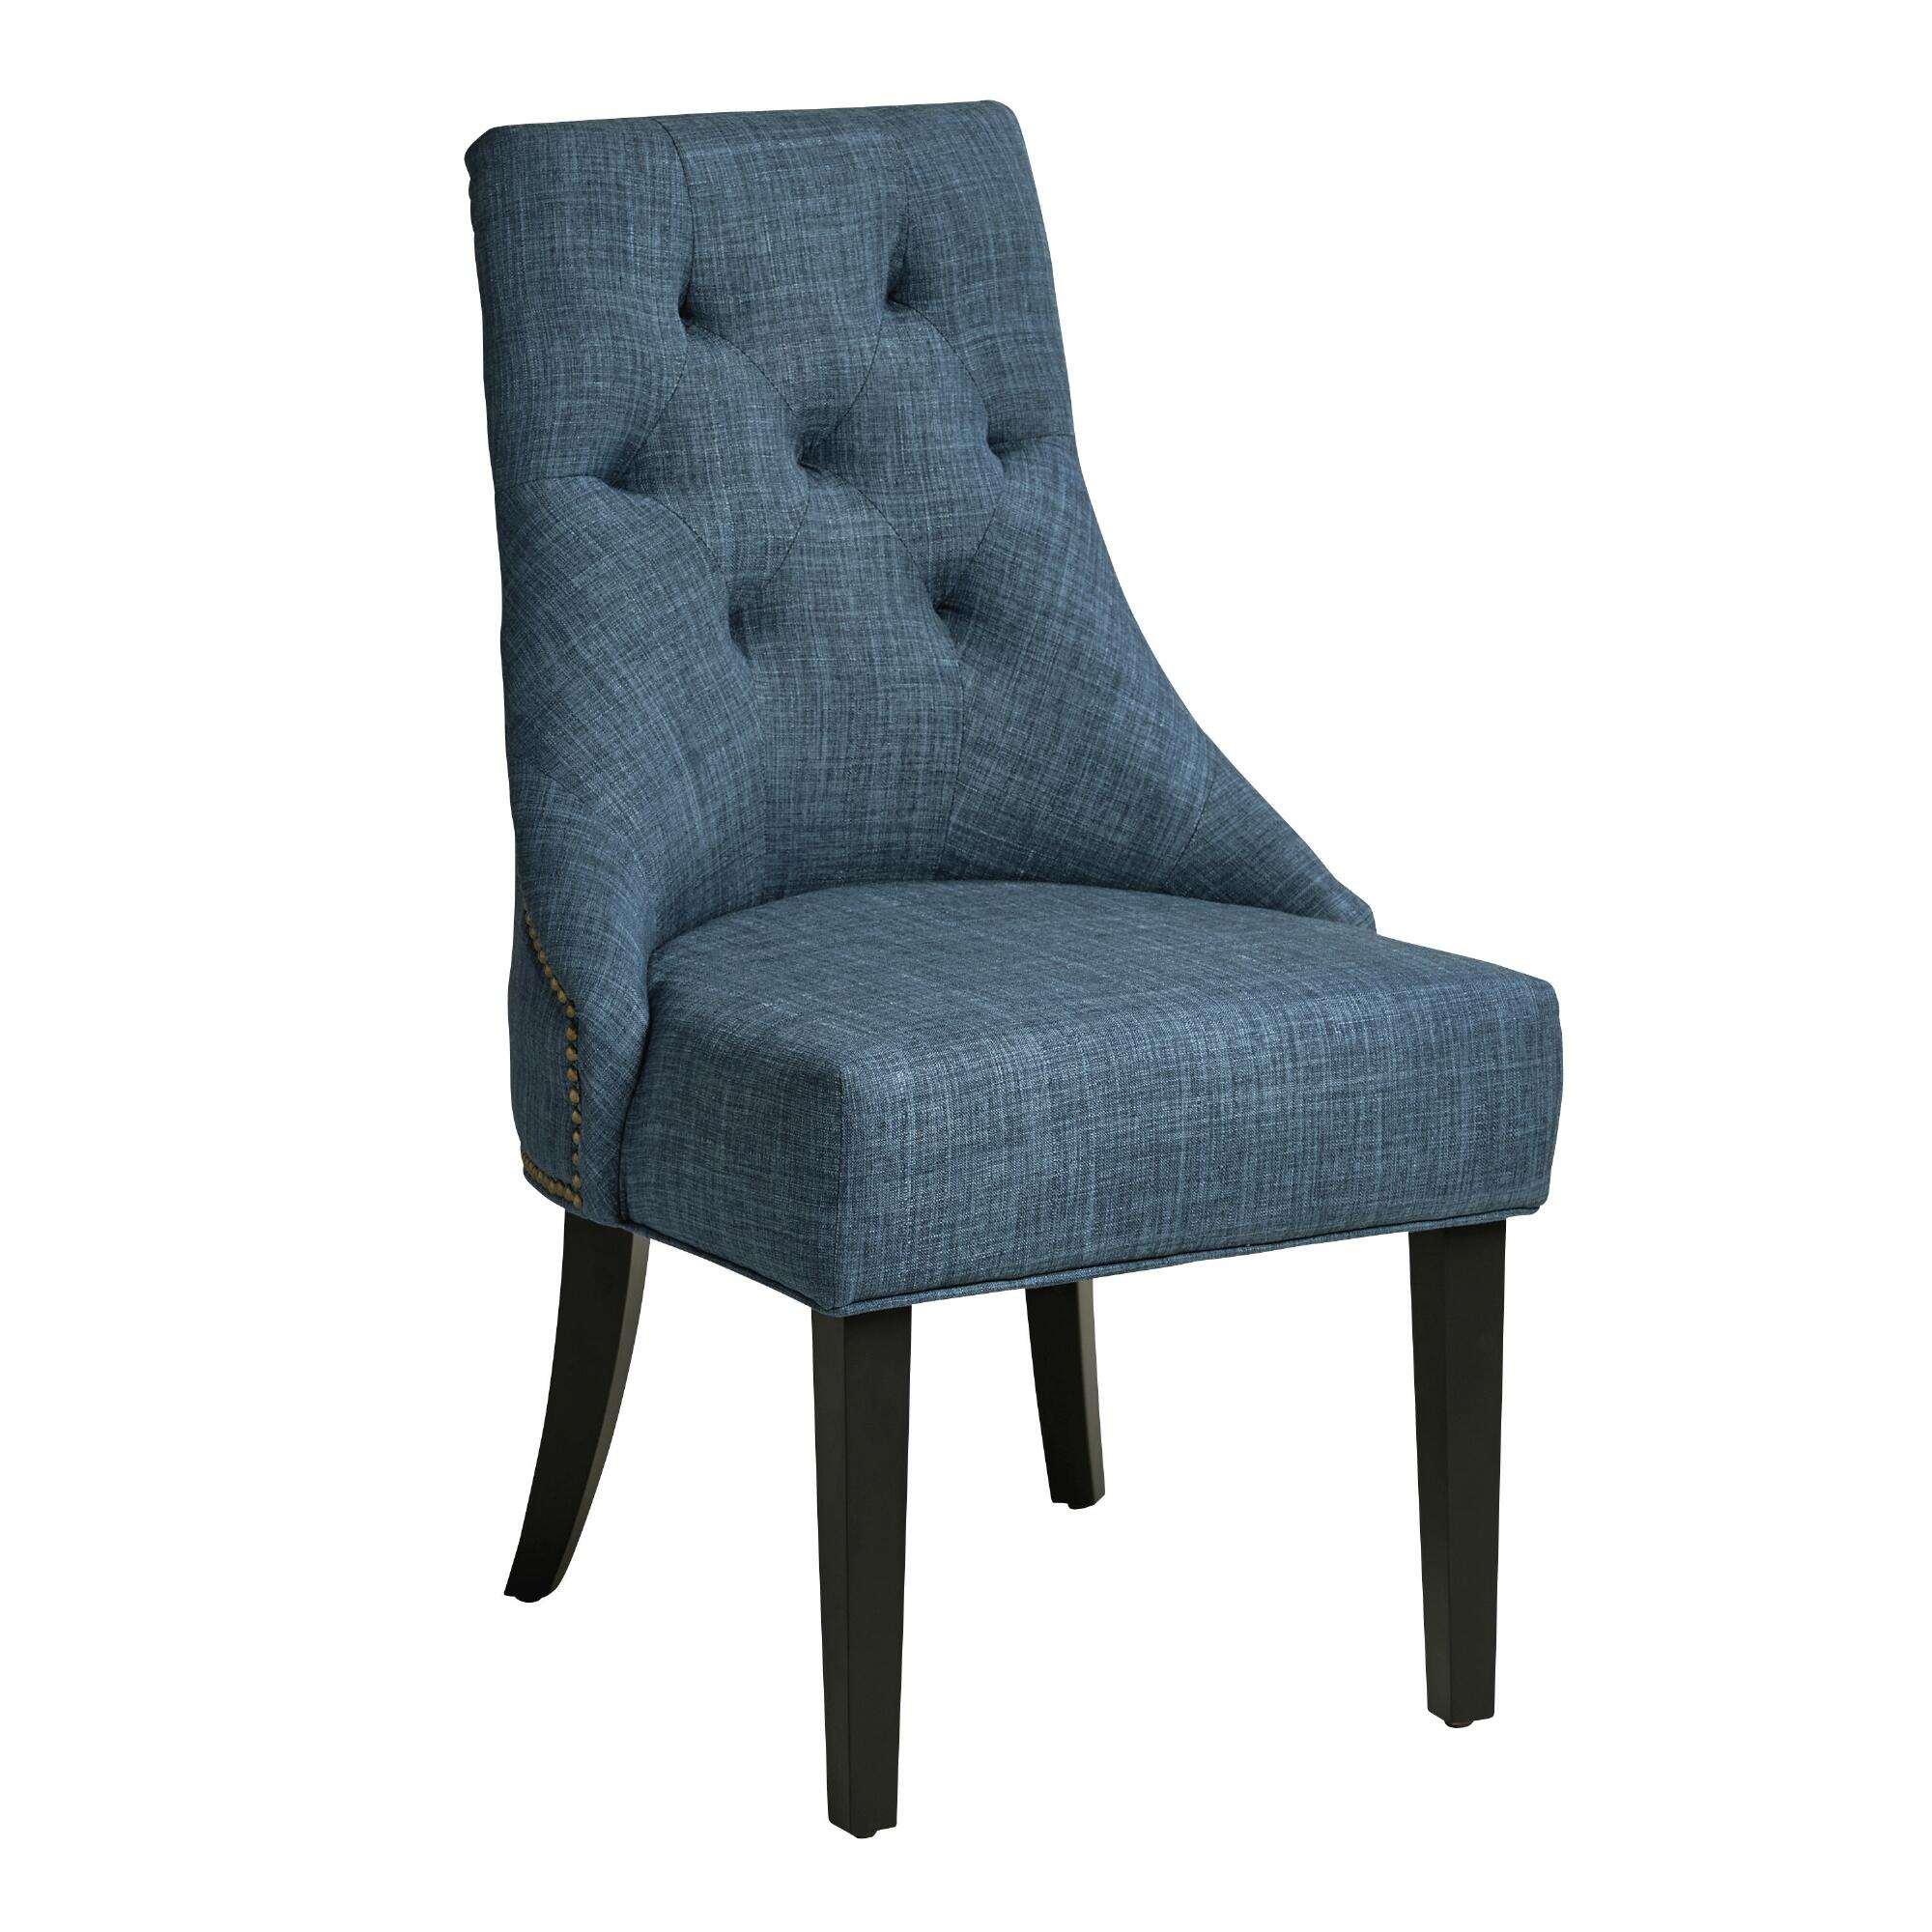 Denim Blue Linen Lydia Dining Chairs, Set Of 2